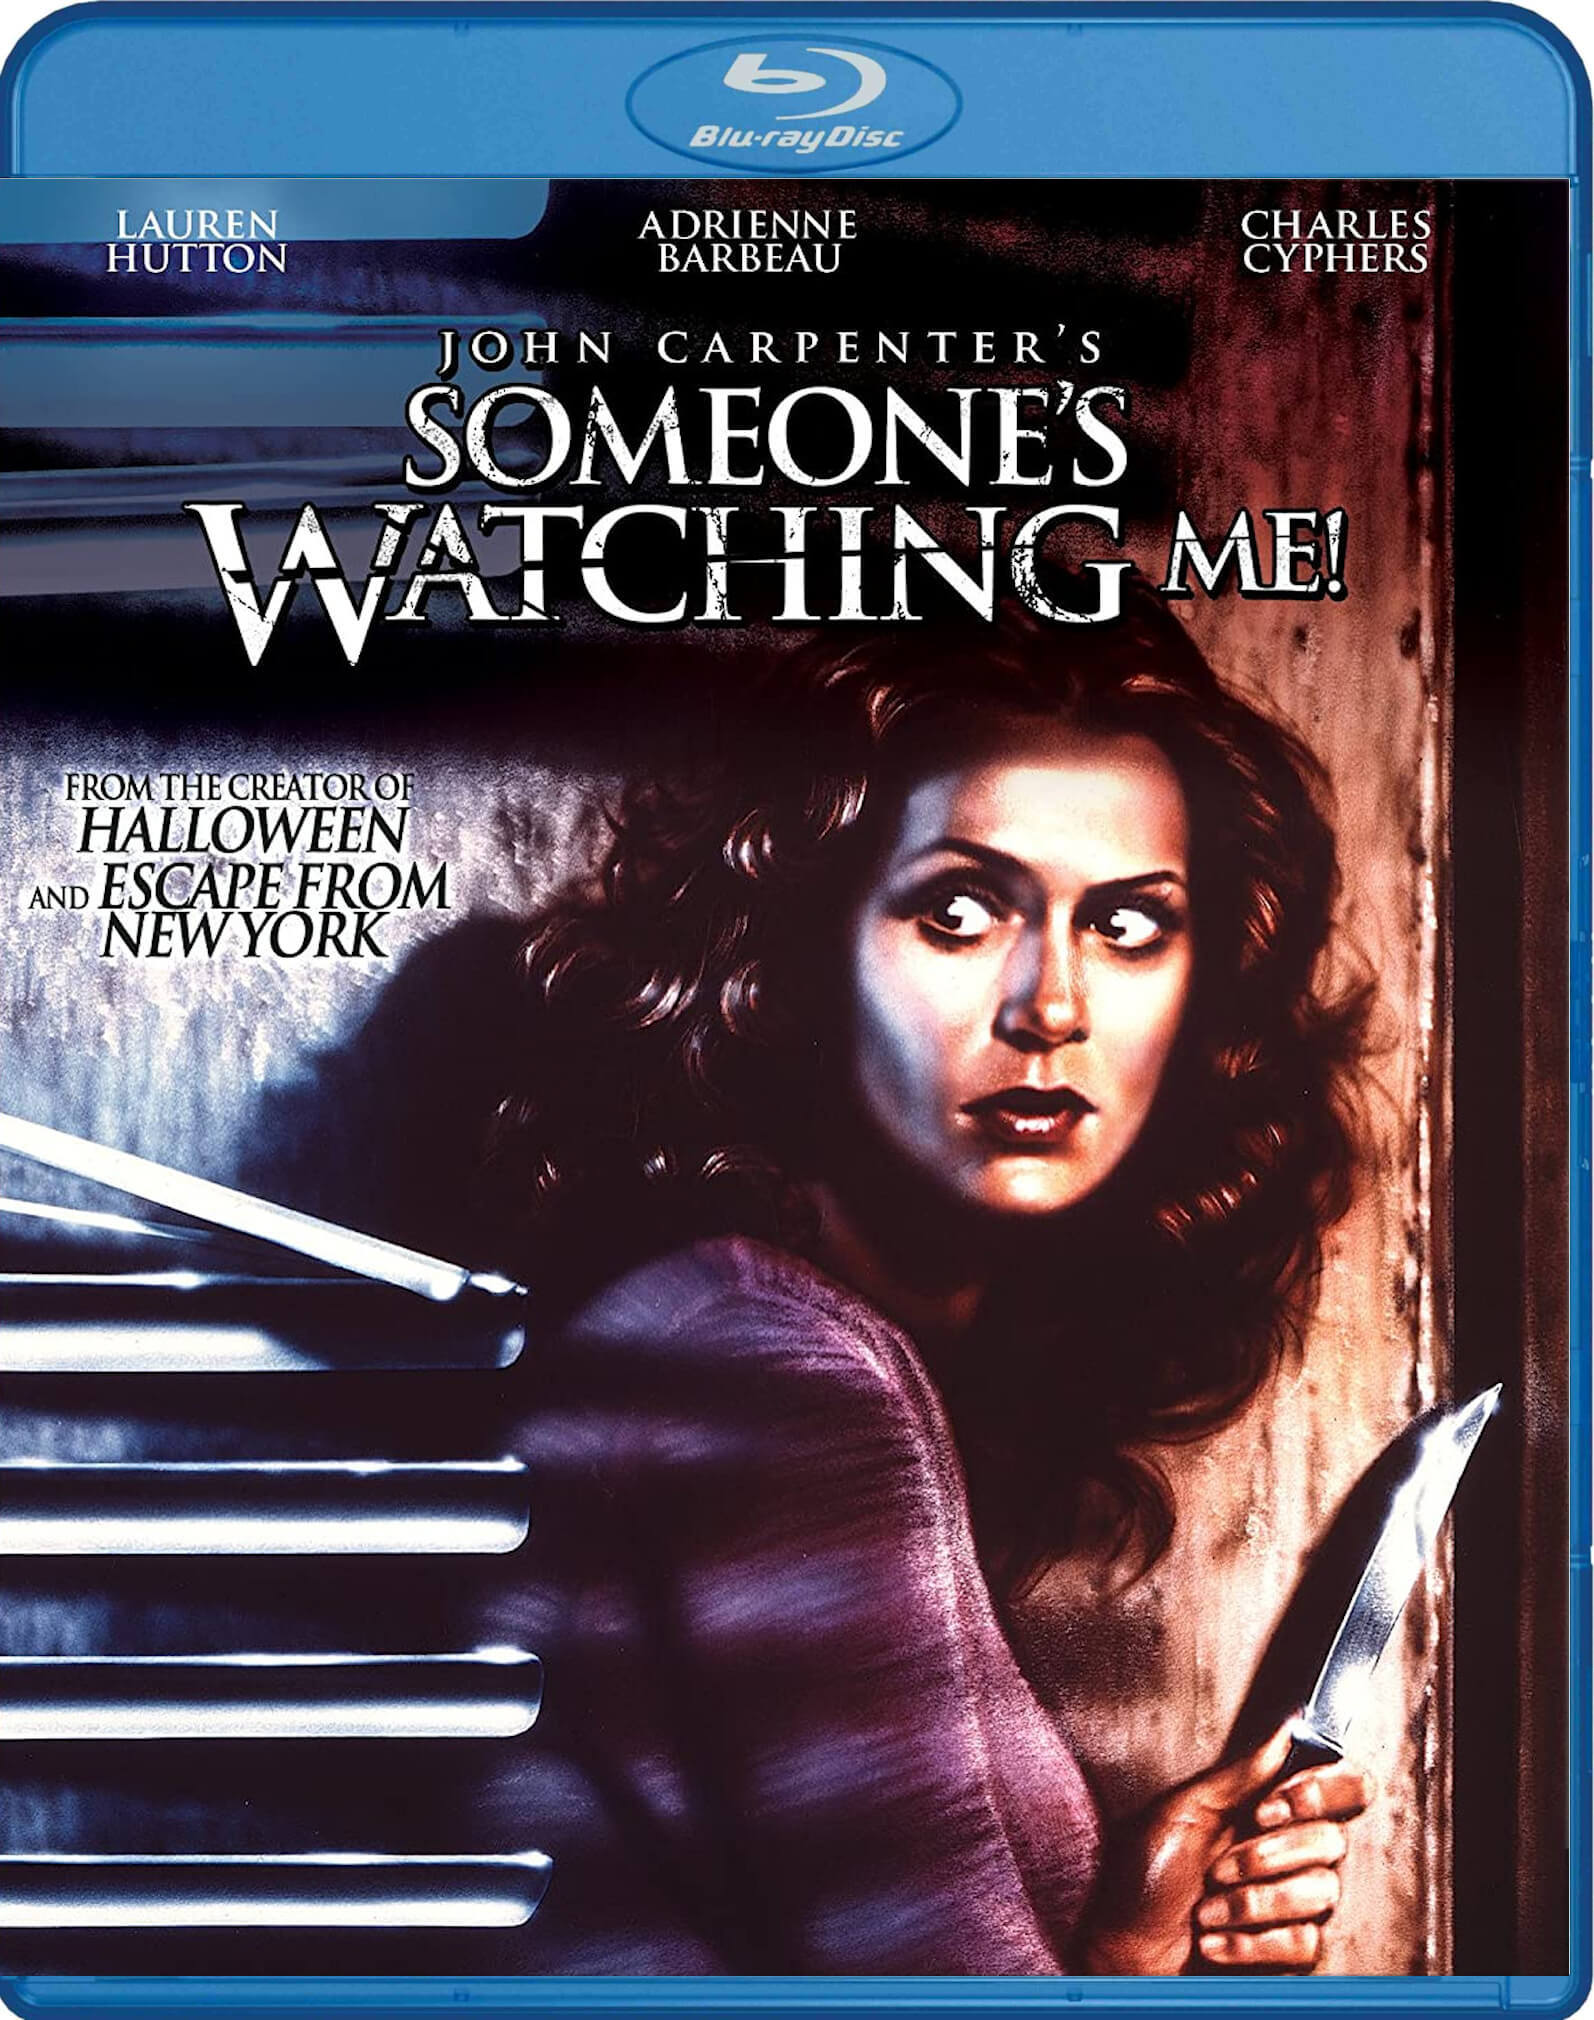 Someone's Watching Me! (TV) (1978) Blu-ray